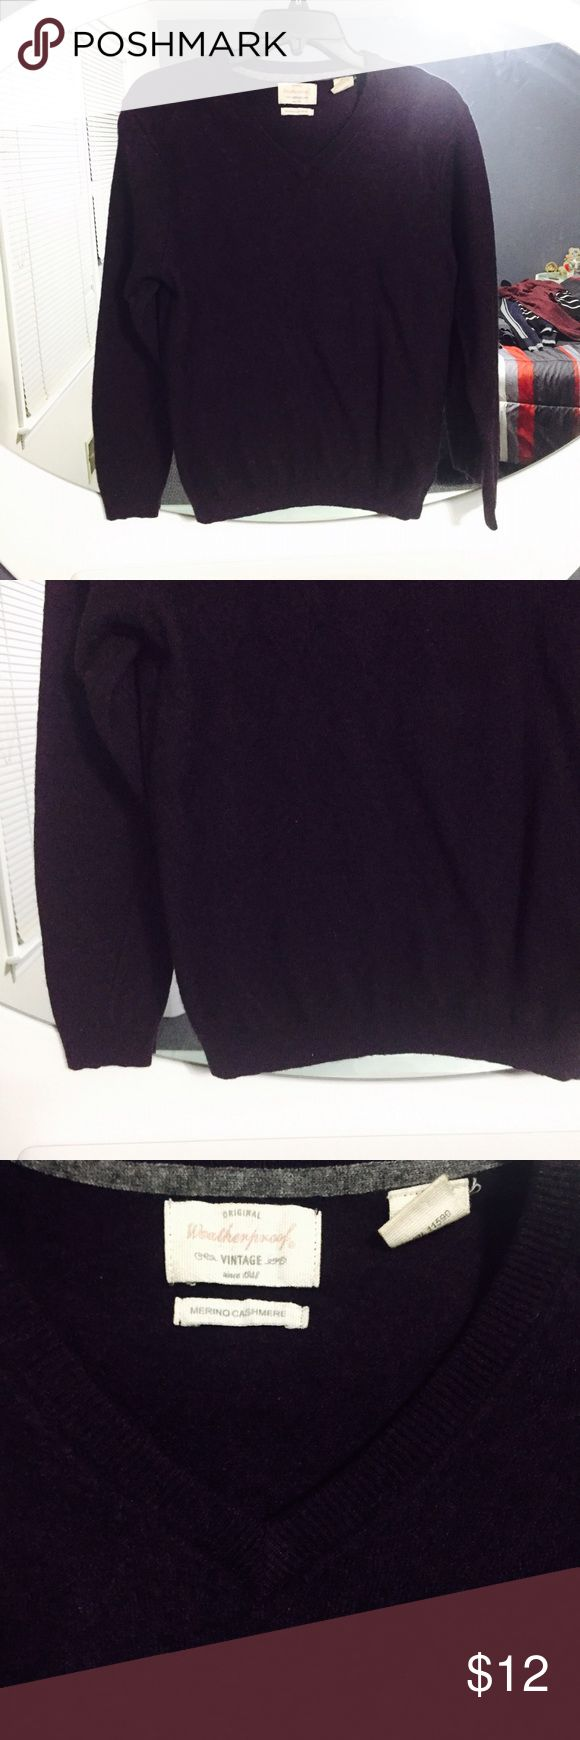 men's cashmere sweater men's dark purple merino cashmere sweater by weatherproof. hole in back so priced accordingly. extremely warm! Weatherproof Sweaters